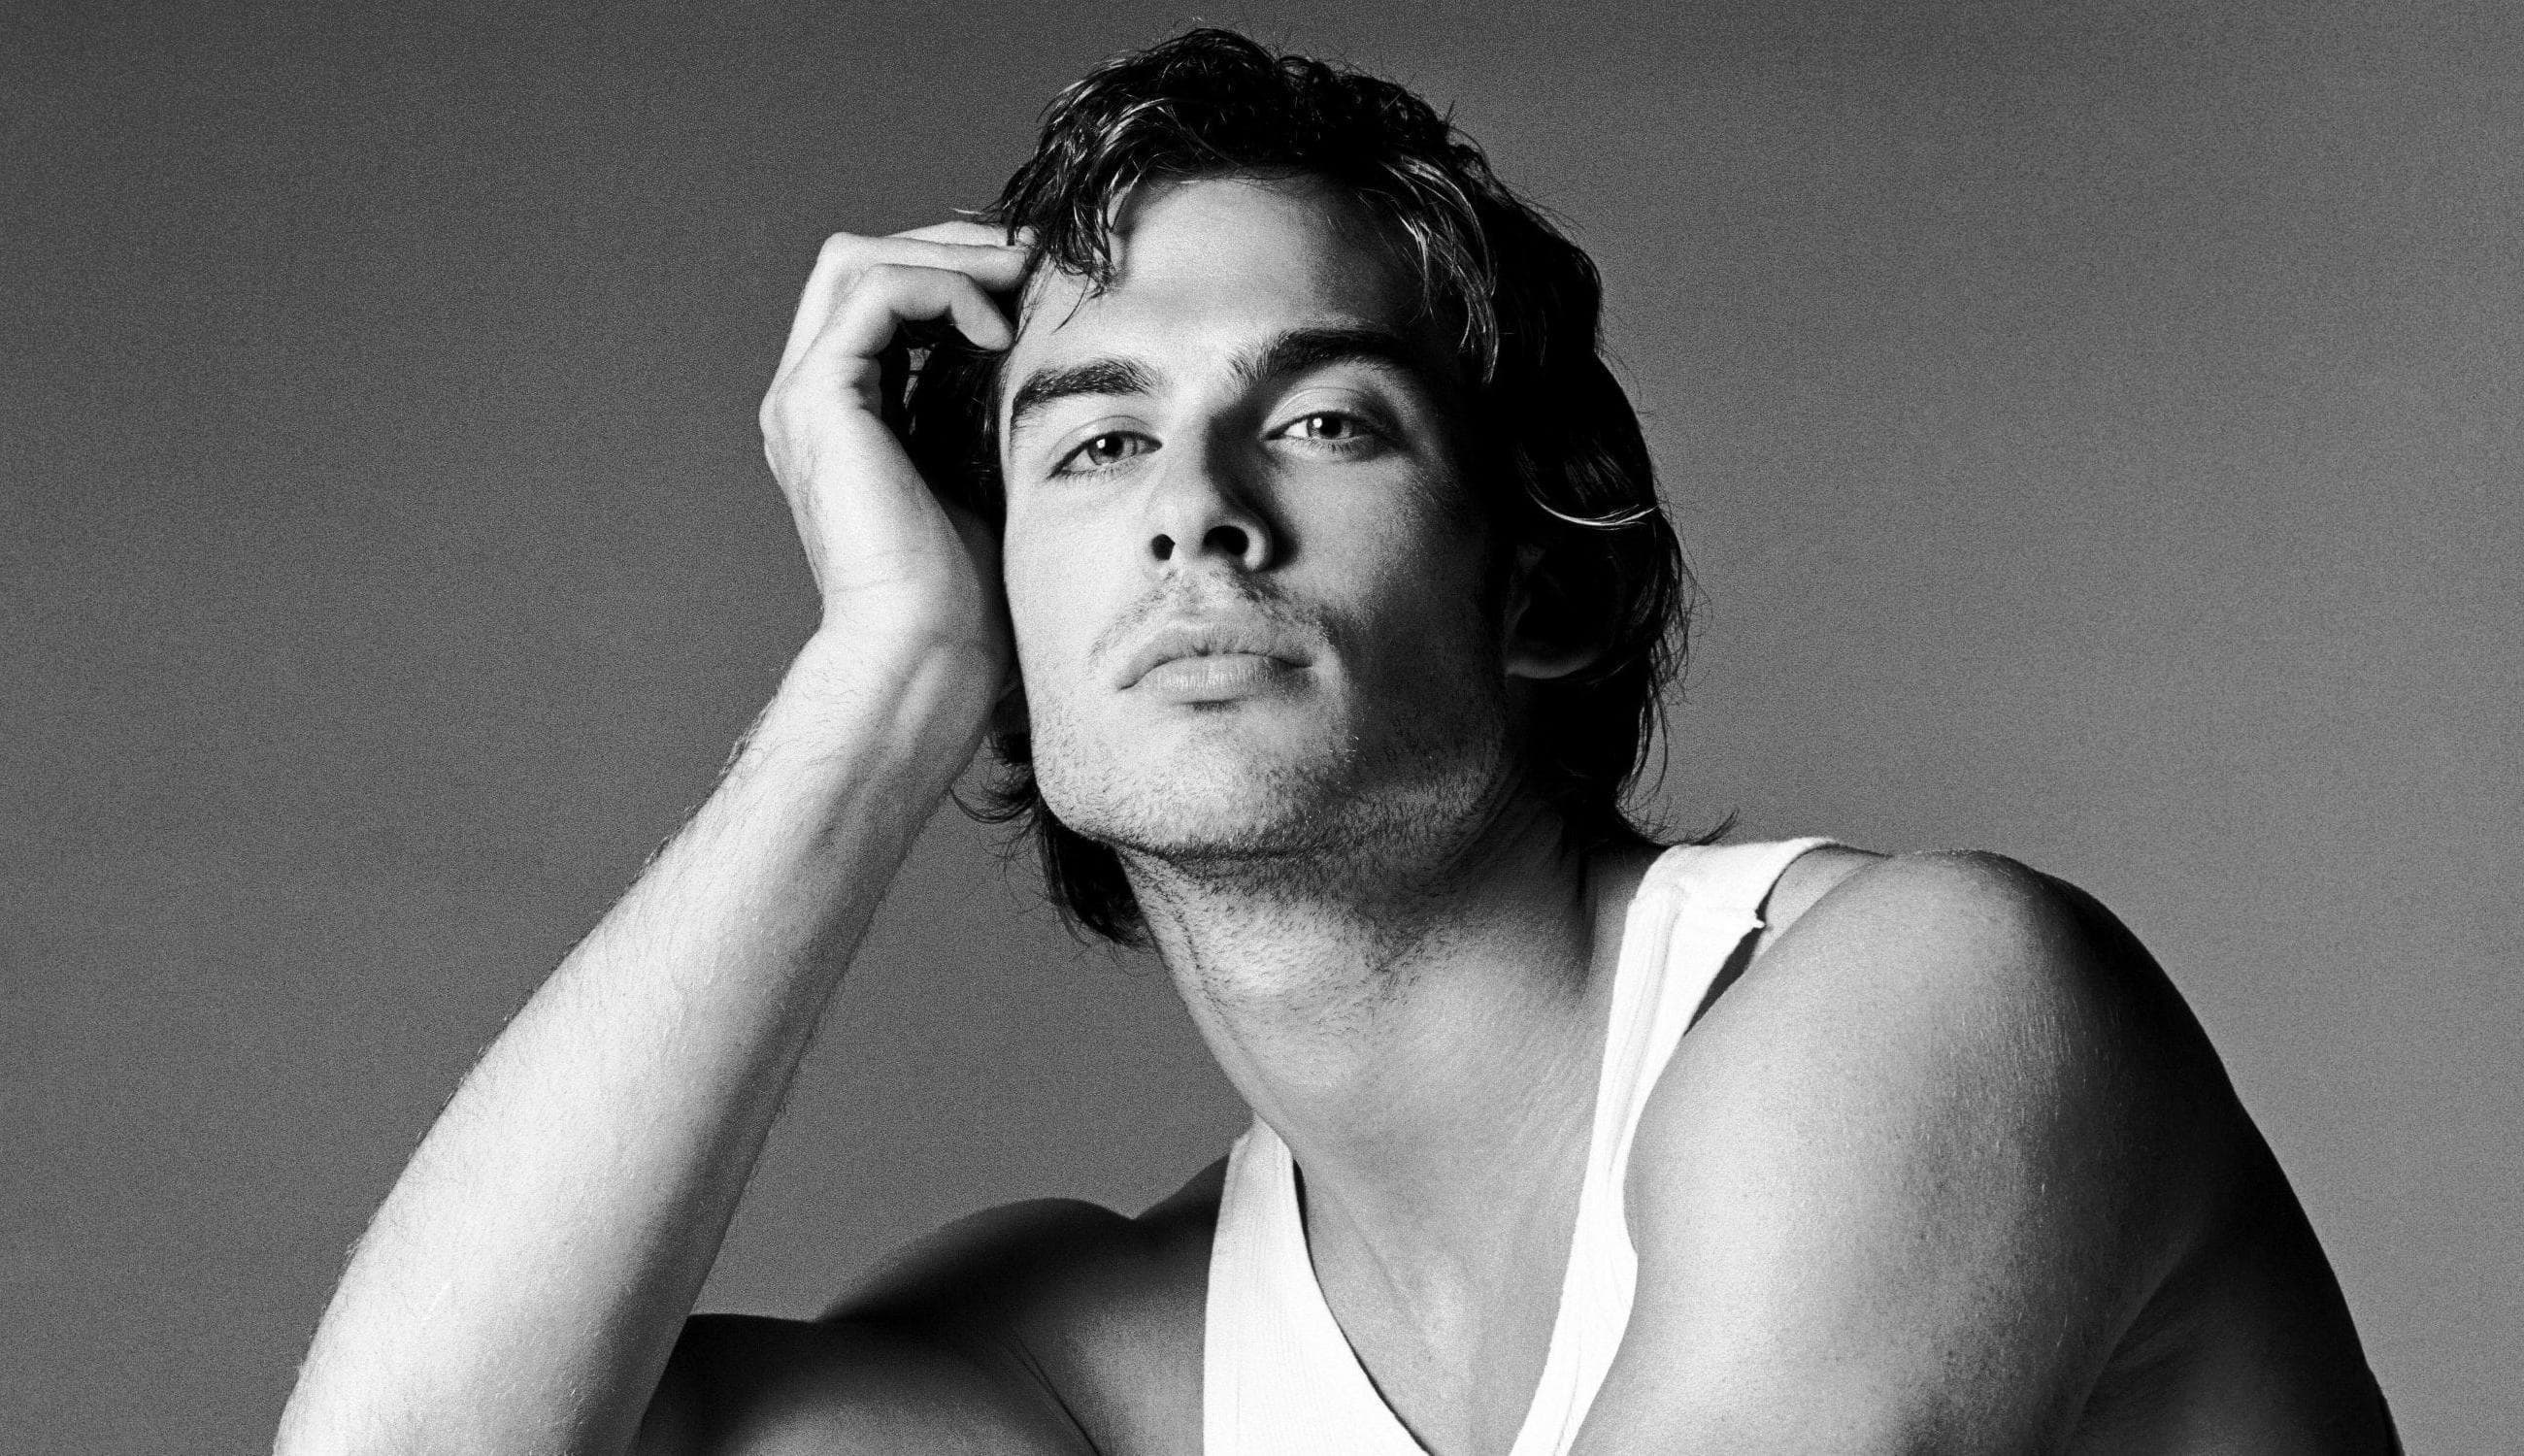 Ian Somerhalder Backgrounds